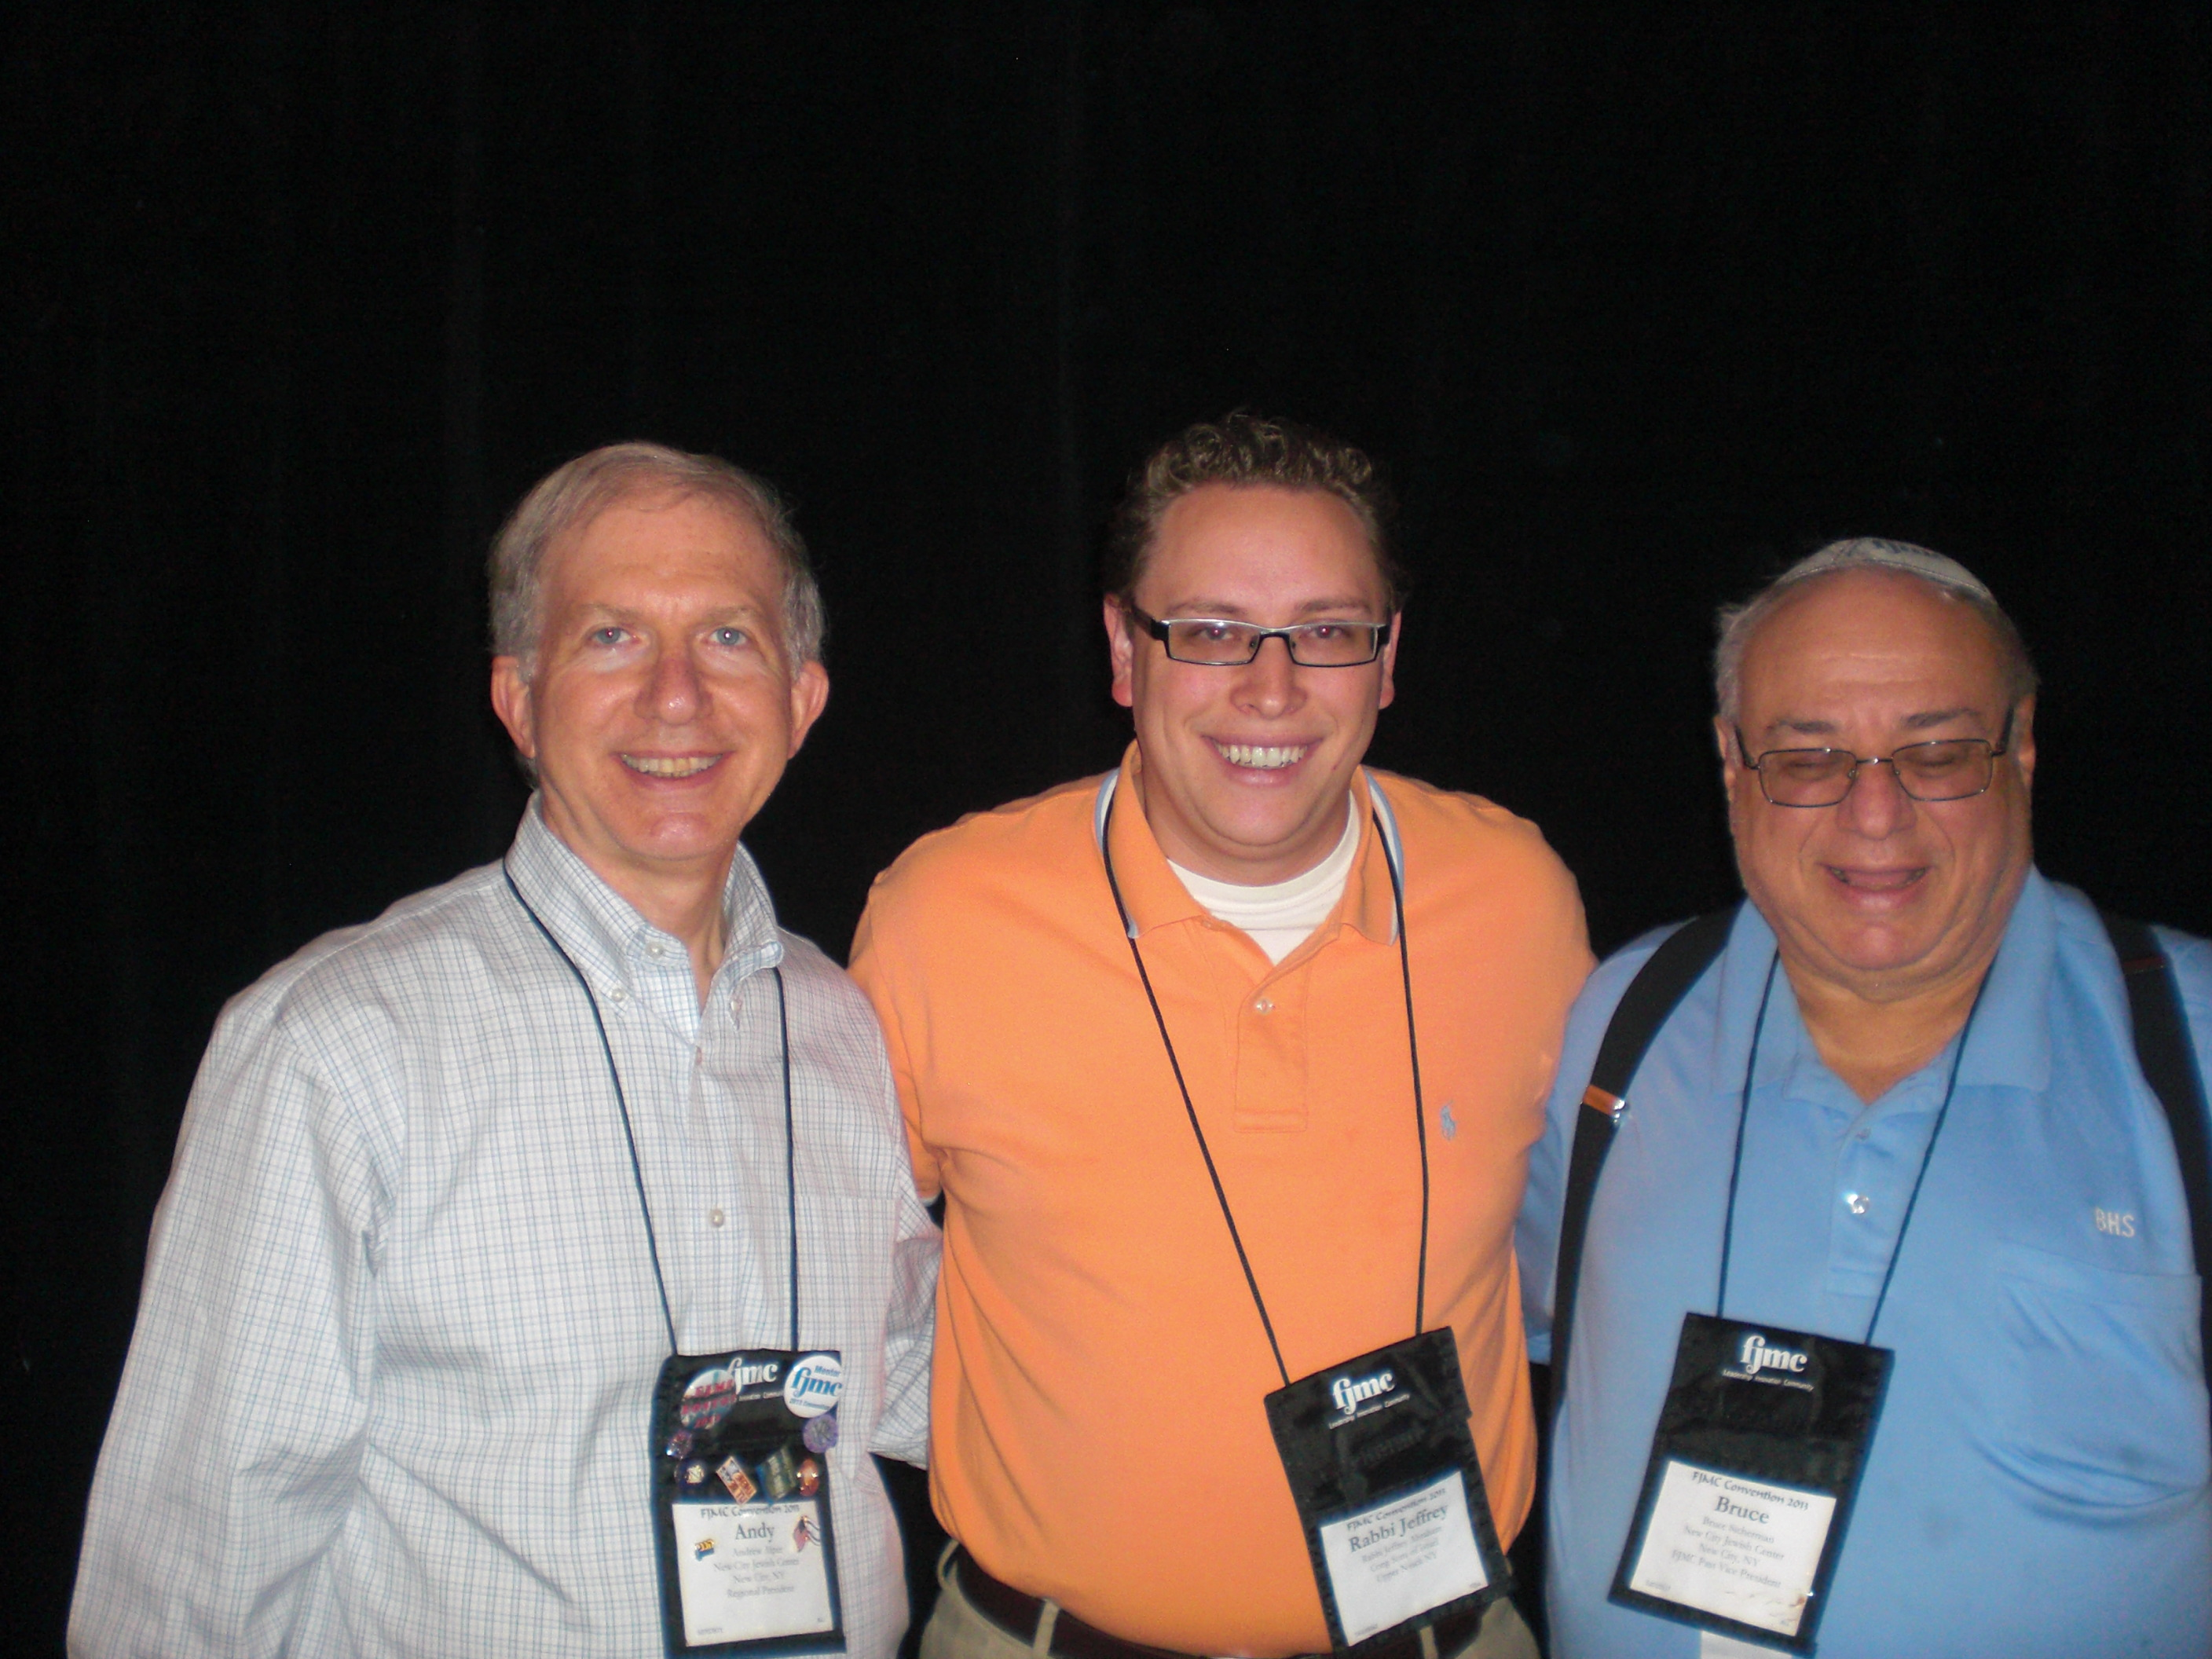 Andy Alper, Rabbi Jeffrey Abraham, and Bruce Sicherman.